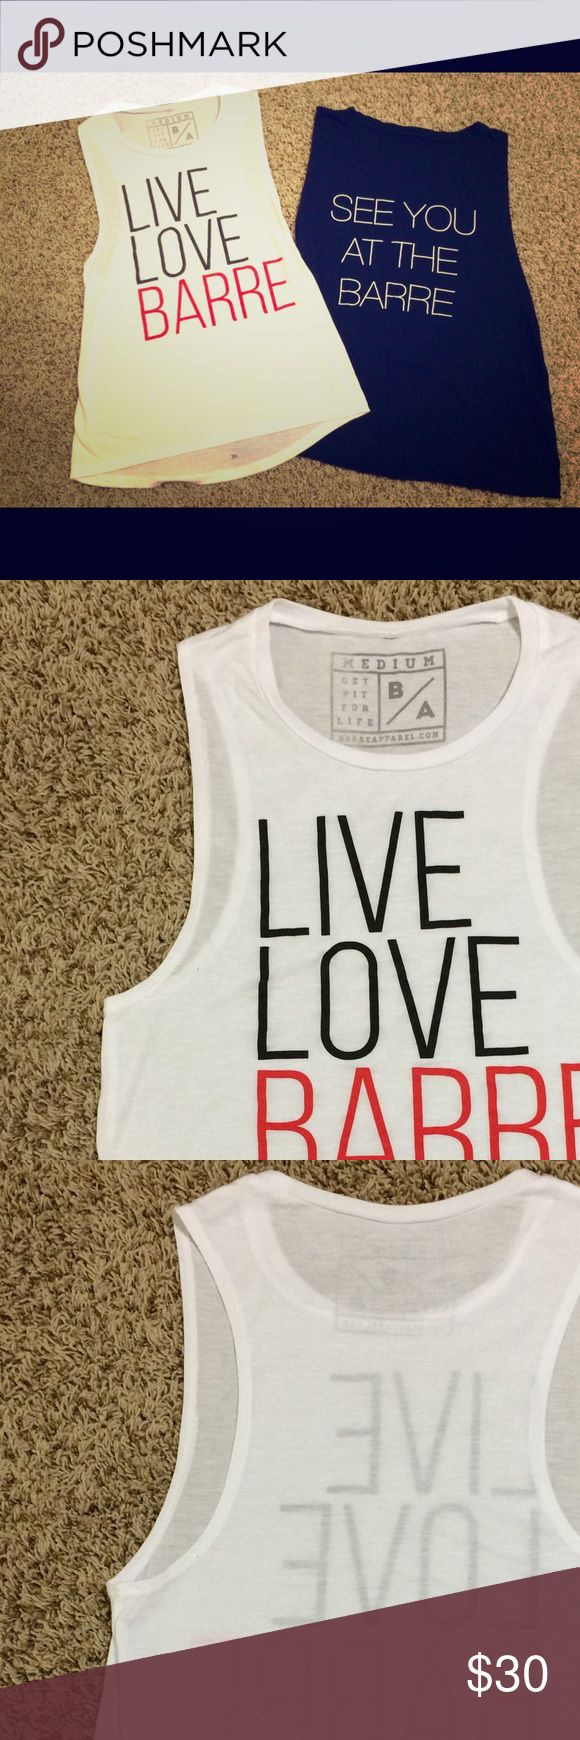 Bundle of 2 Barre muscle tank tops, size M Bundle of (2) barre tank tops, muscle fit, super soft material! Both for $30 total or $16 each. Barre Apparel Tops Tank Tops